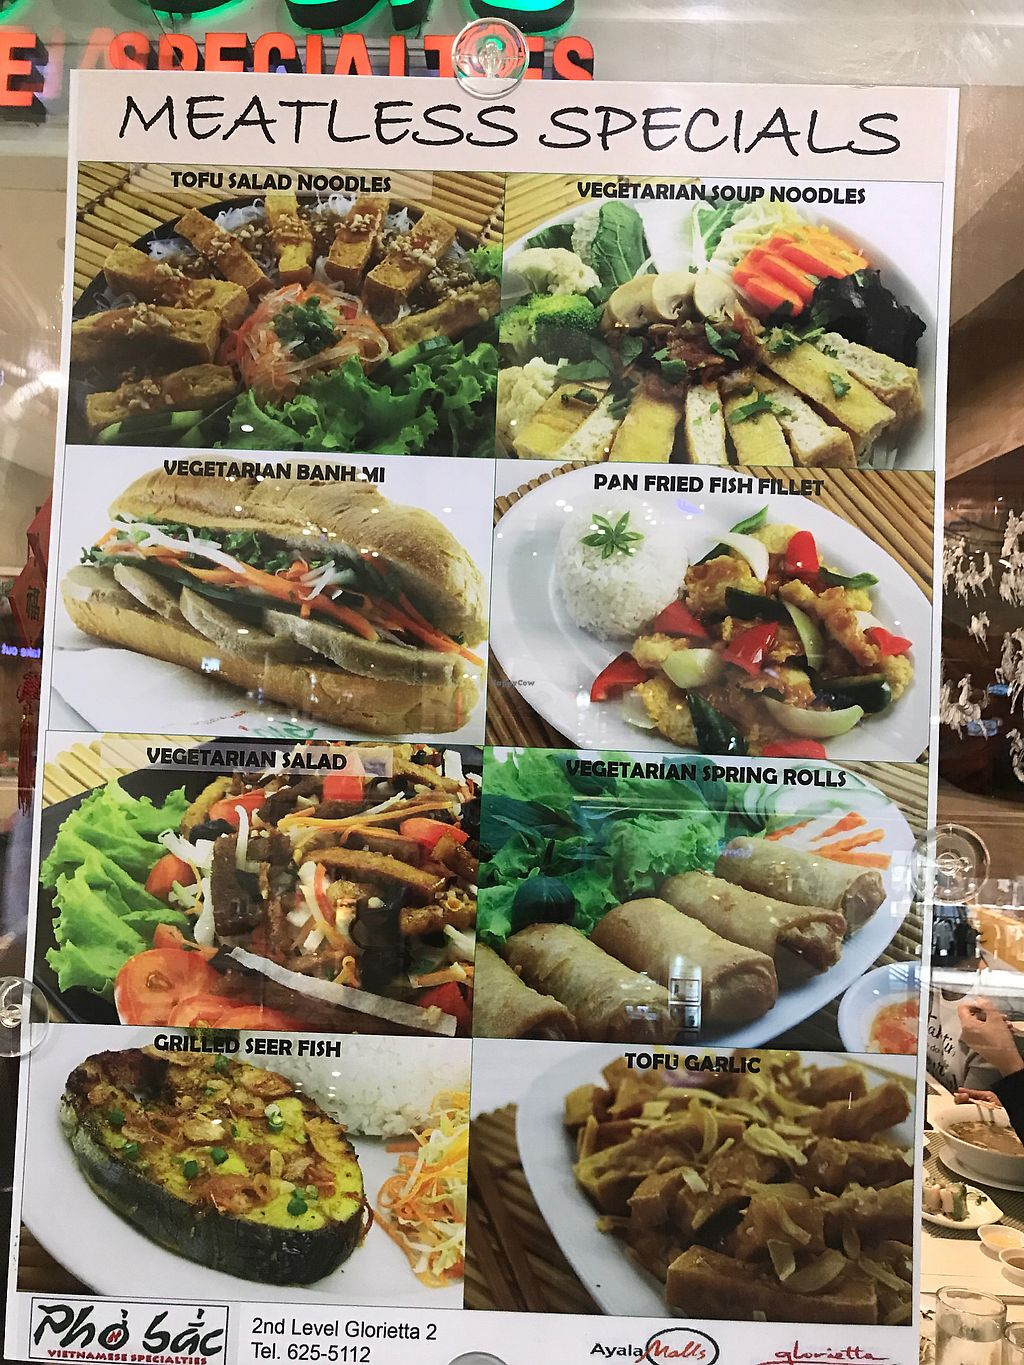 """Photo of Pho Bac Vietnamese Specialities  by <a href=""""/members/profile/chayong"""">chayong</a> <br/>menu <br/> July 18, 2017  - <a href='/contact/abuse/image/94119/281681'>Report</a>"""